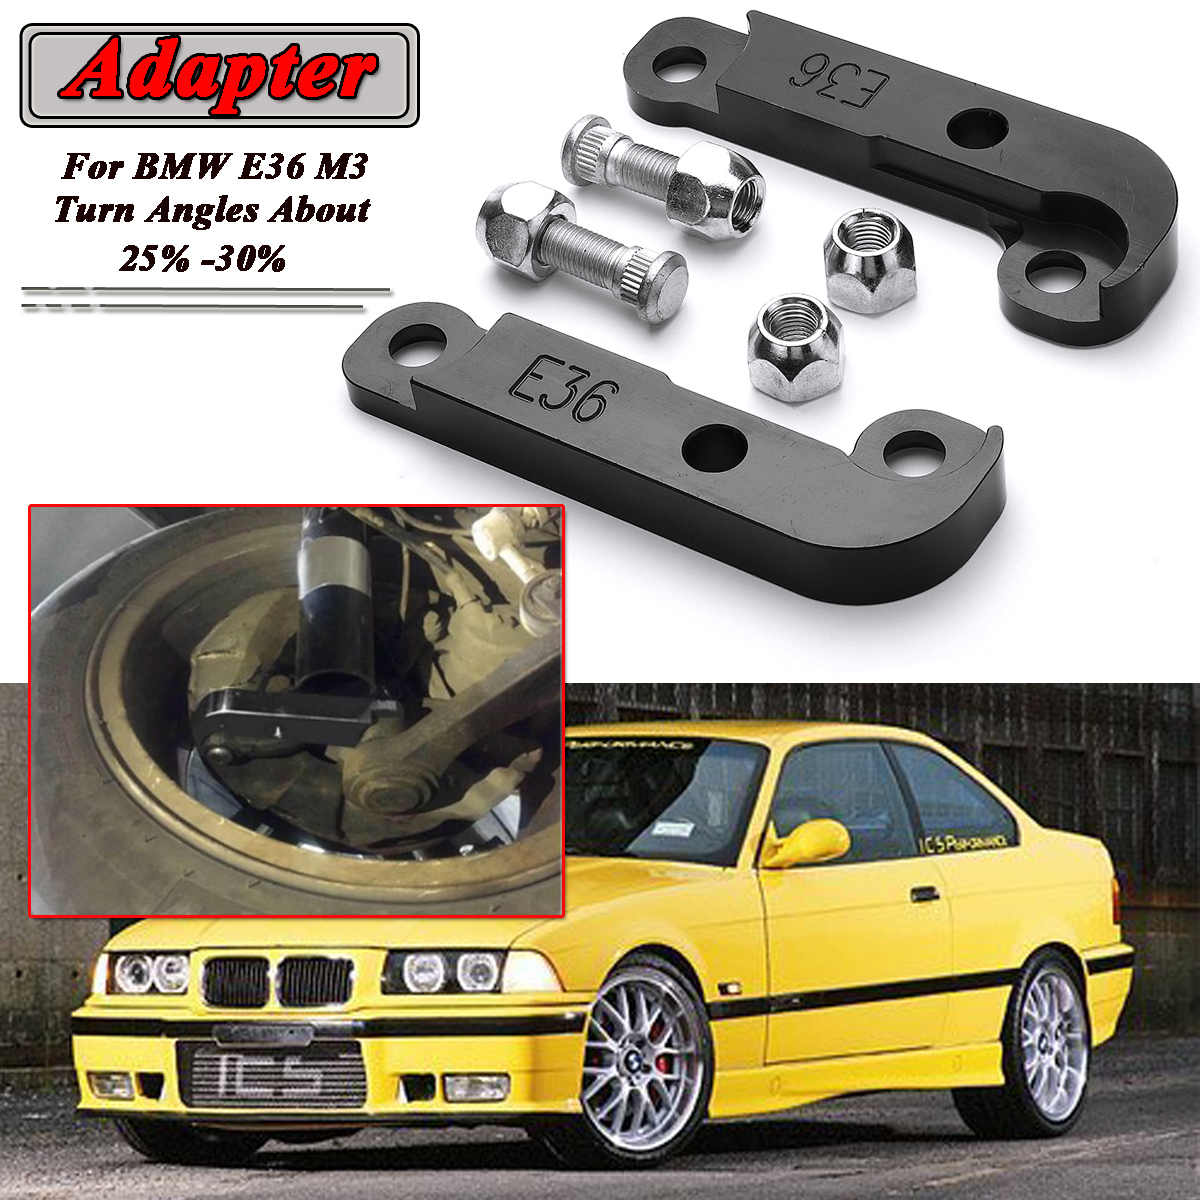 small resolution of 2pcs red black adapter increasing turn angles about 25 30 drift lock kit for bmw e36 m3 tuning drift power adapters mounting in axle parts from